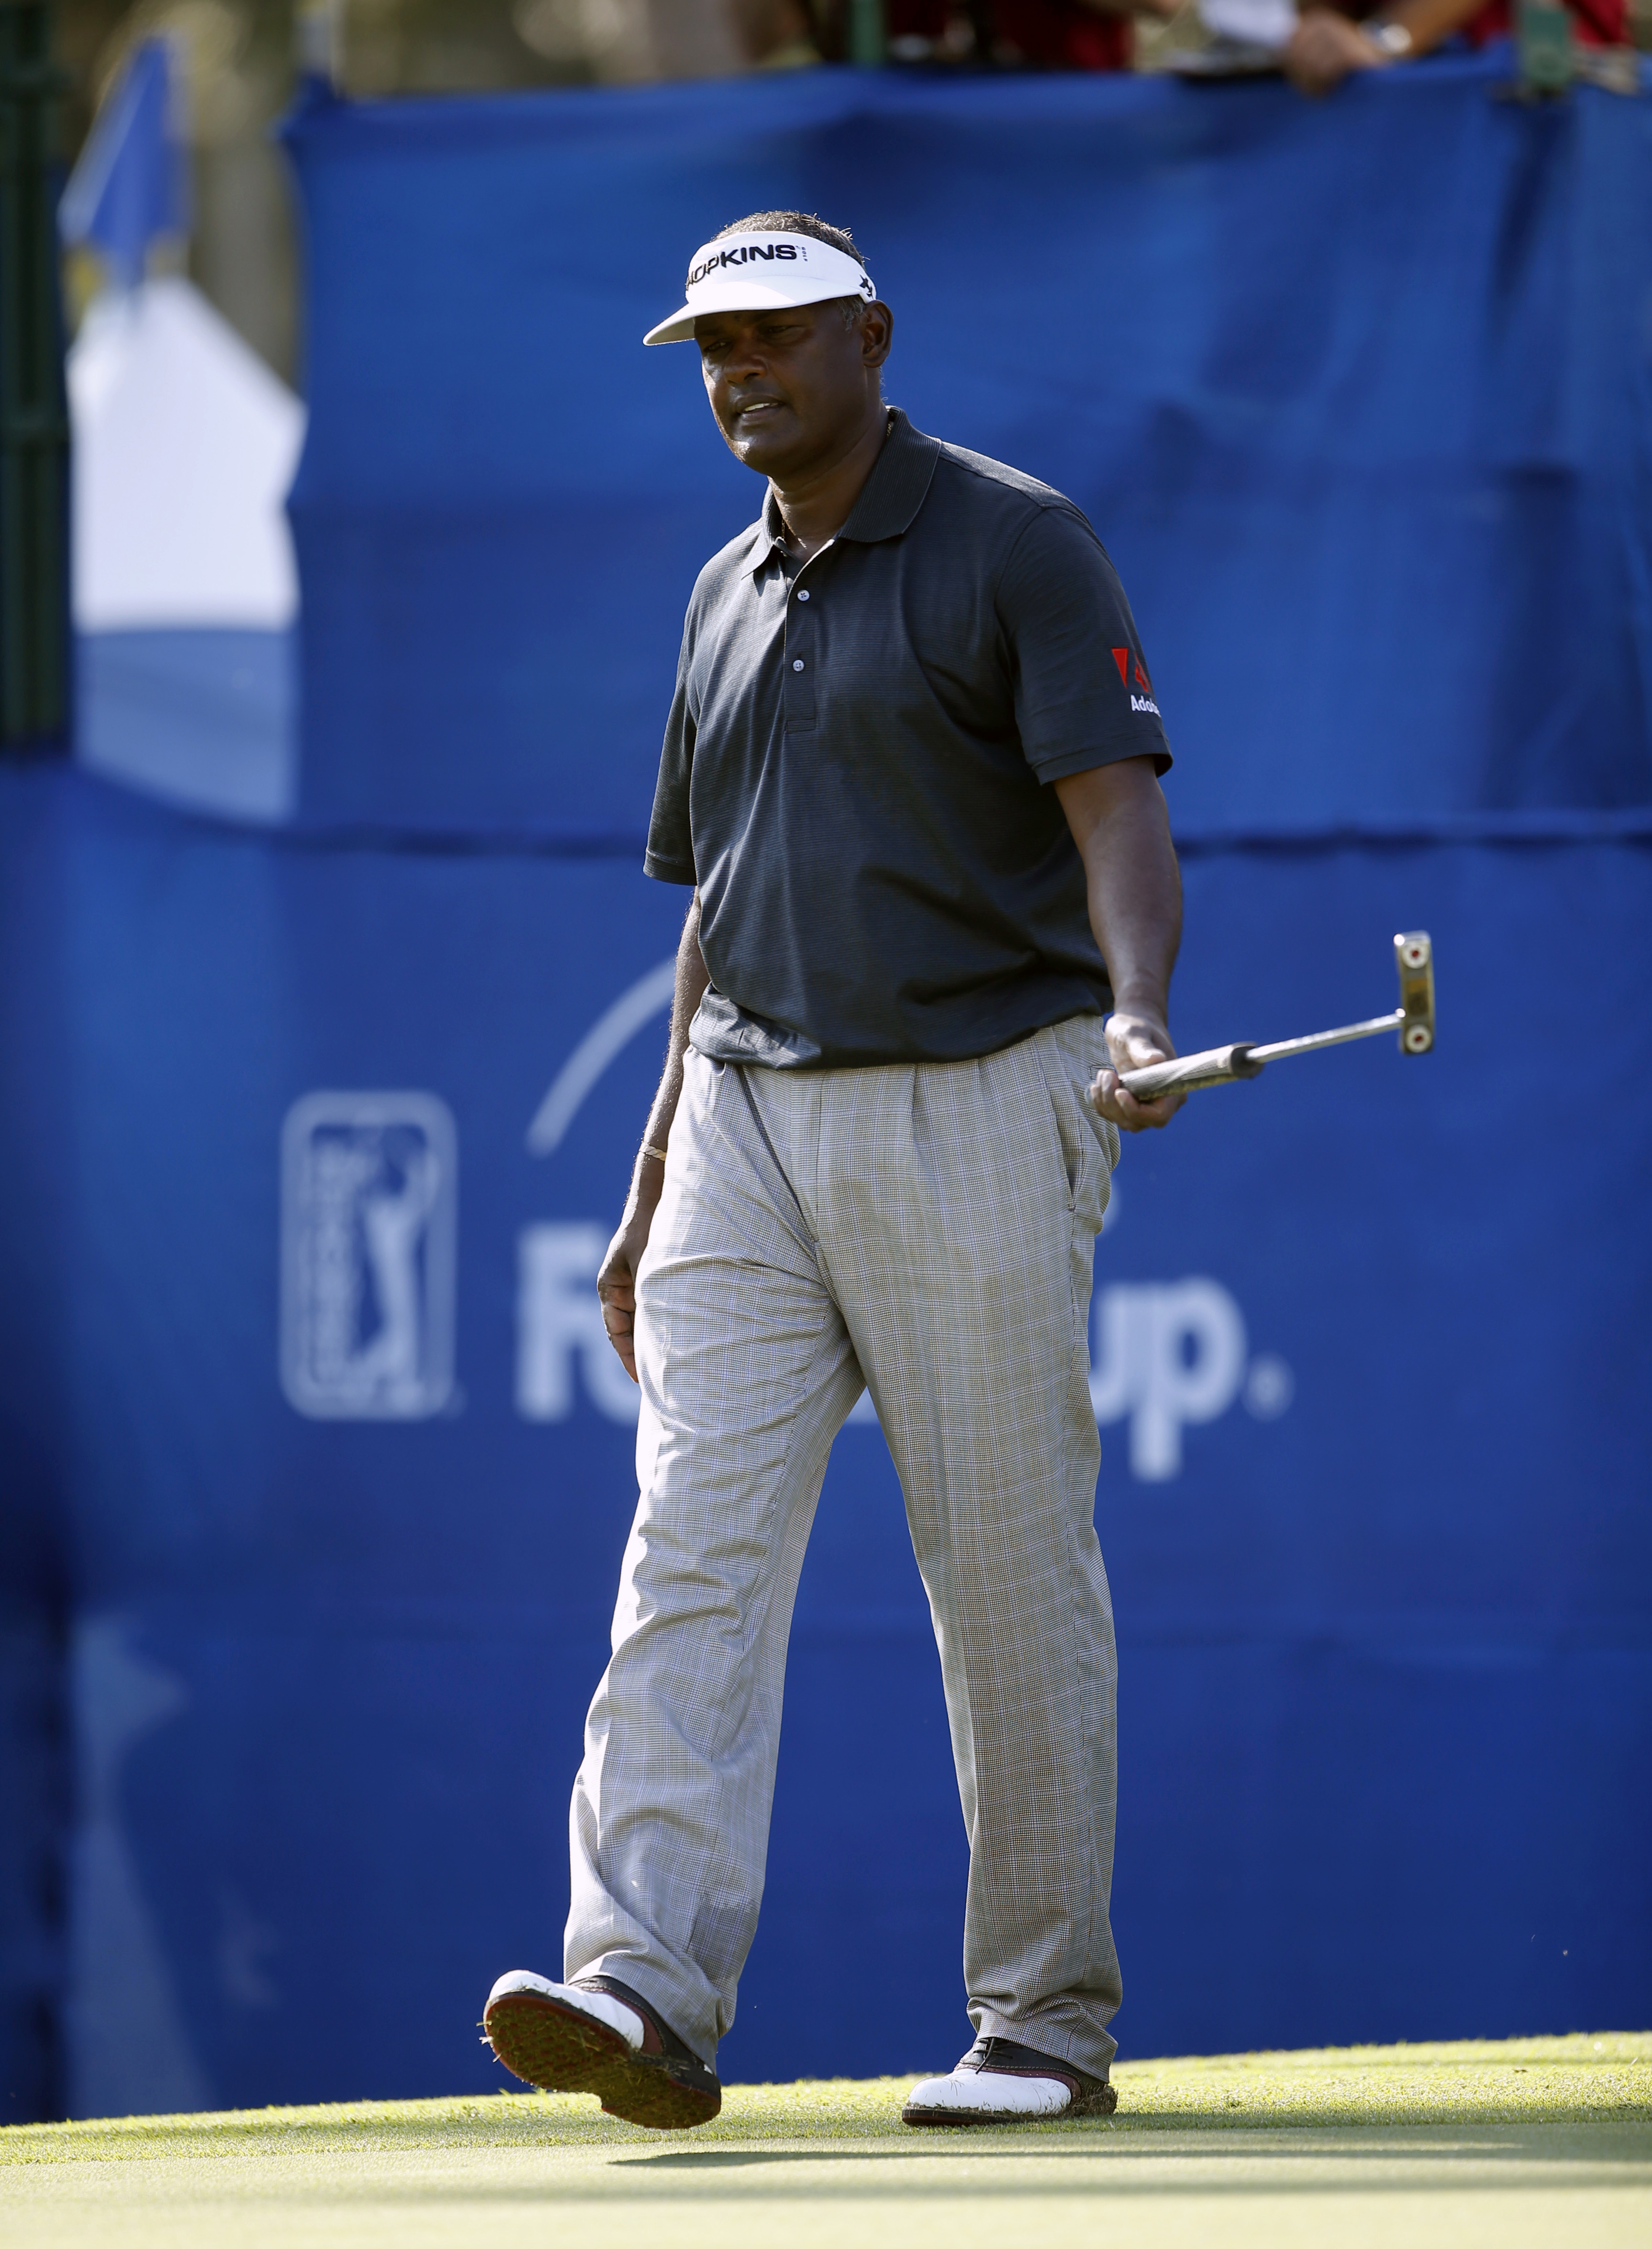 Vijay Singh during the first round of the 2016 Sony Open.